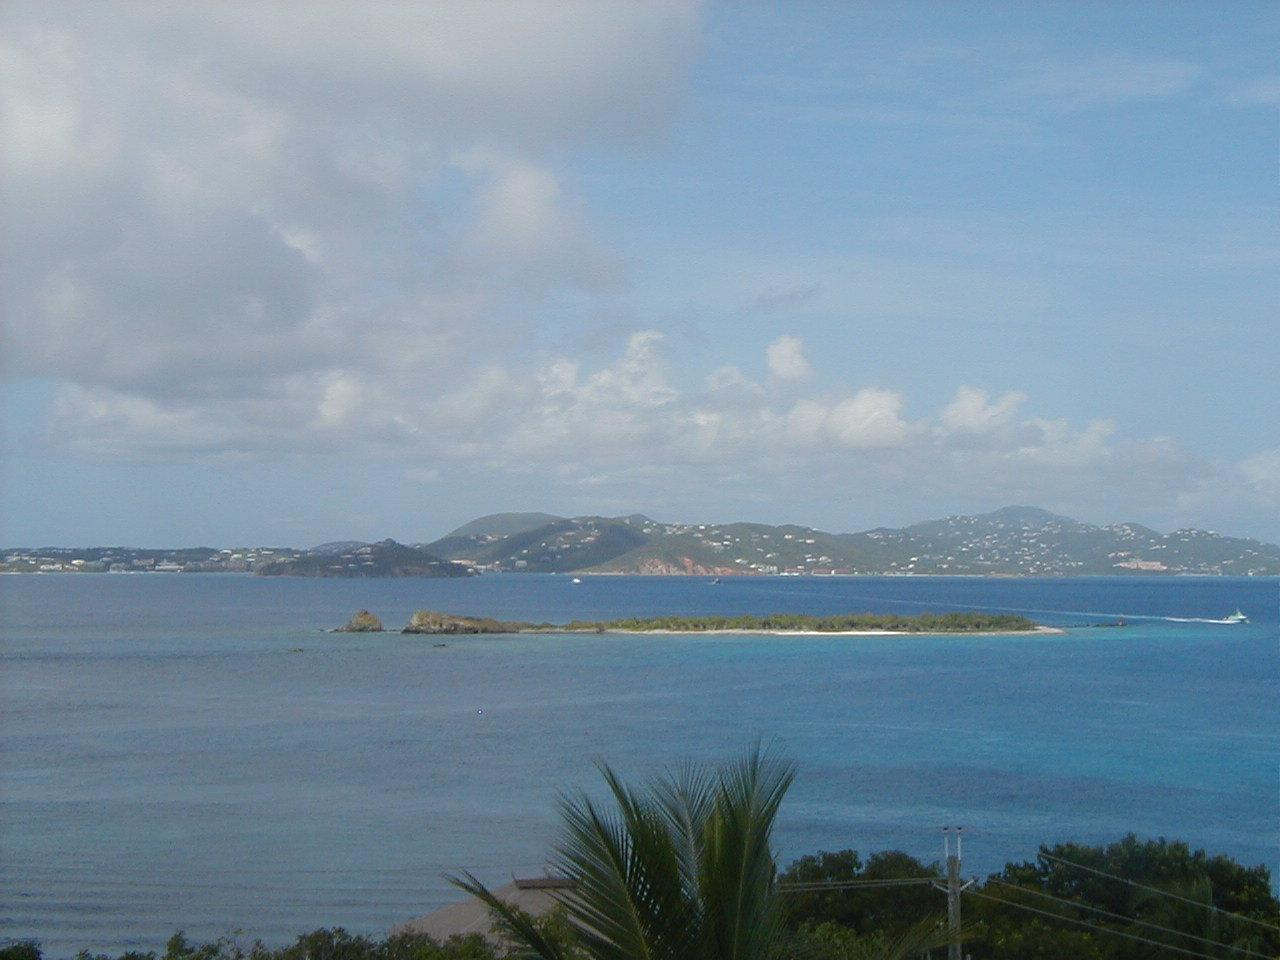 Higher elevation views of St. Thomas